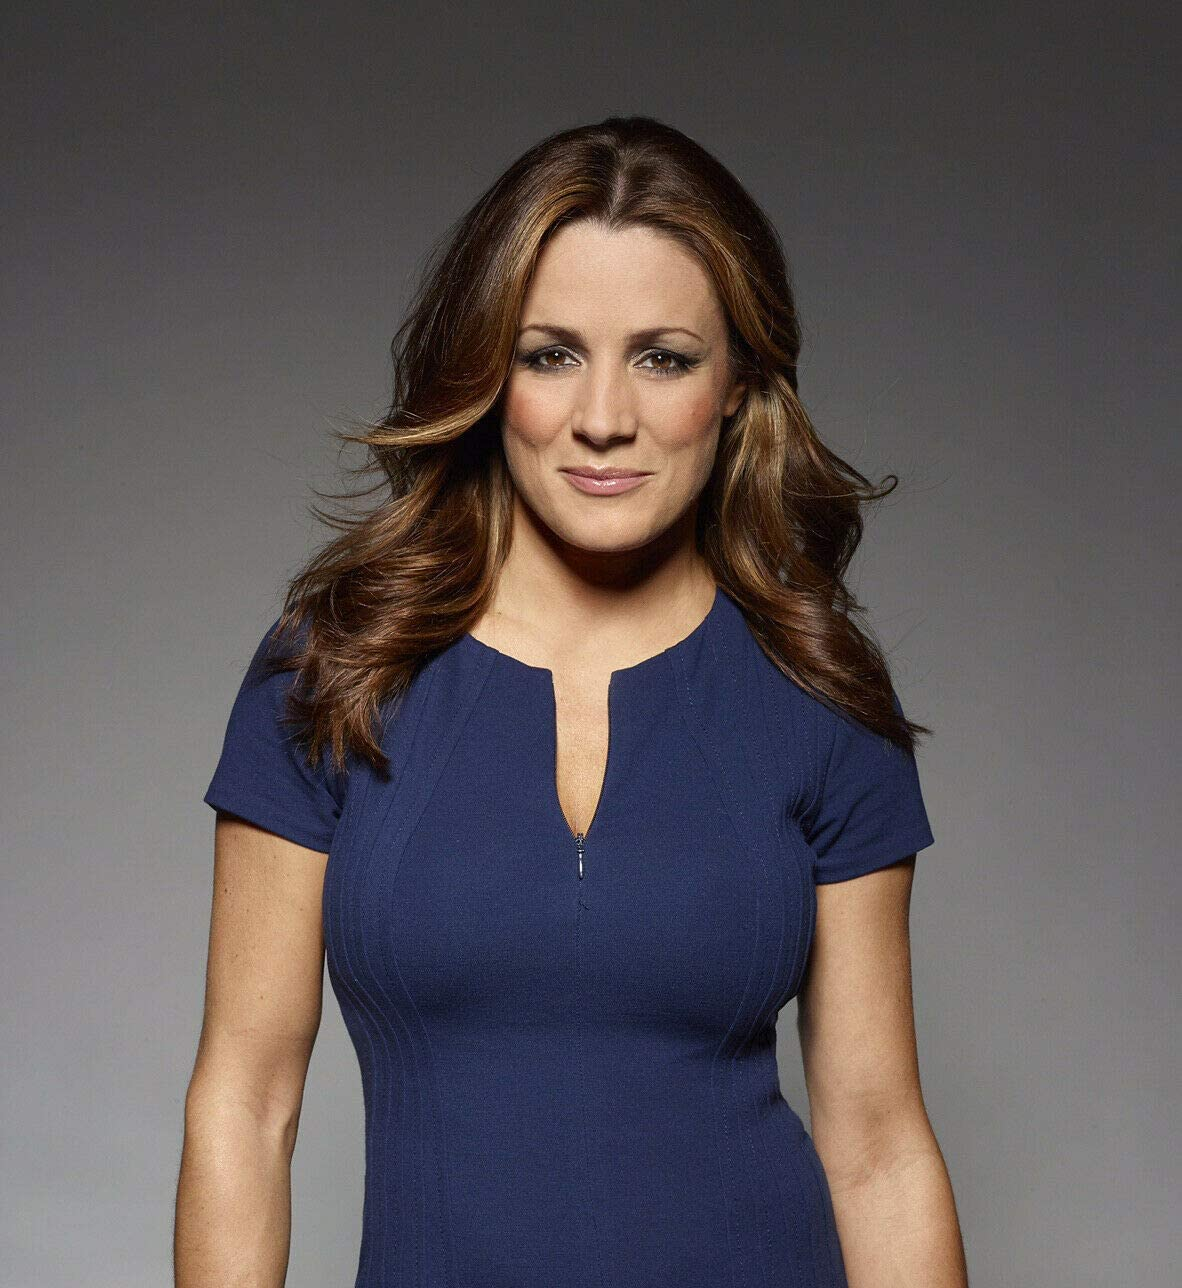 bucraft Natalie Pinkham Posing for Phote 8x10 Picture Celebrity Print